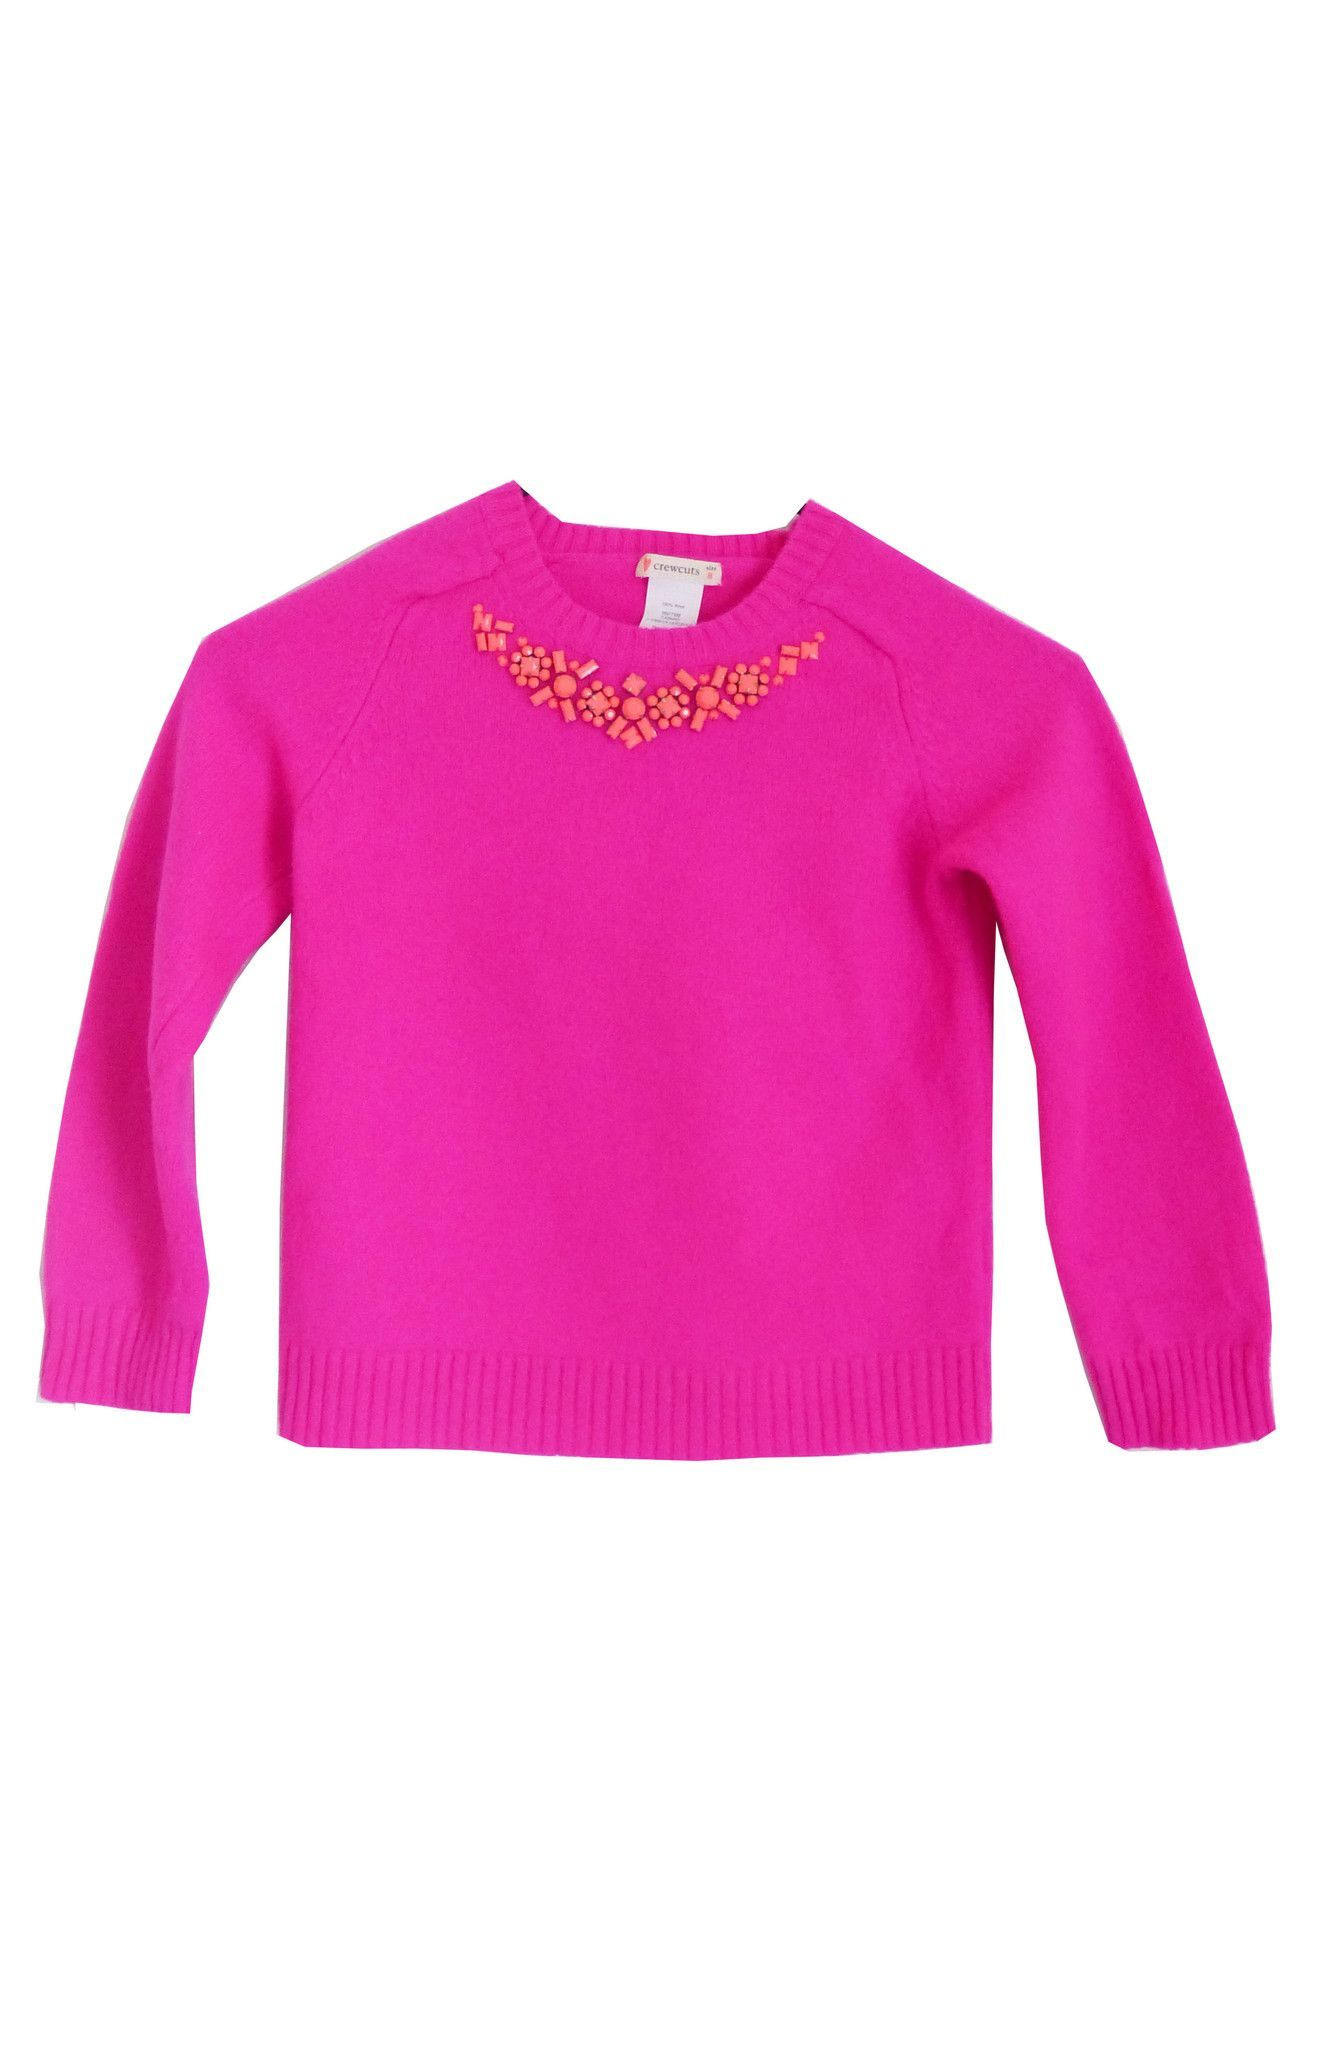 Girls J.Crew Pink Wool Sweater - Size 8 | Products | Pinterest ...